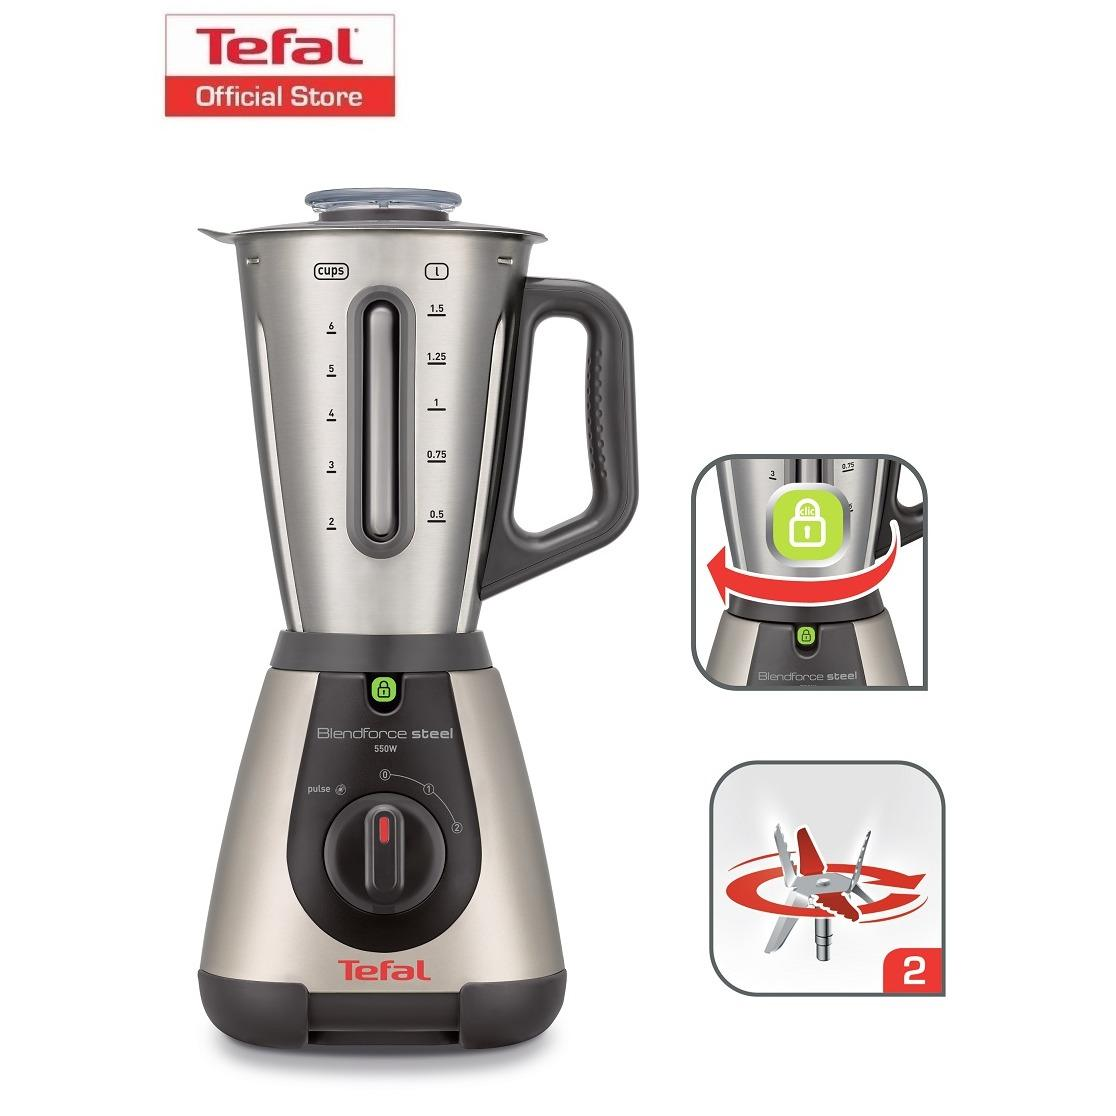 Where To Shop For Tefal Blendforce Stainless Steel Blender Bl320A